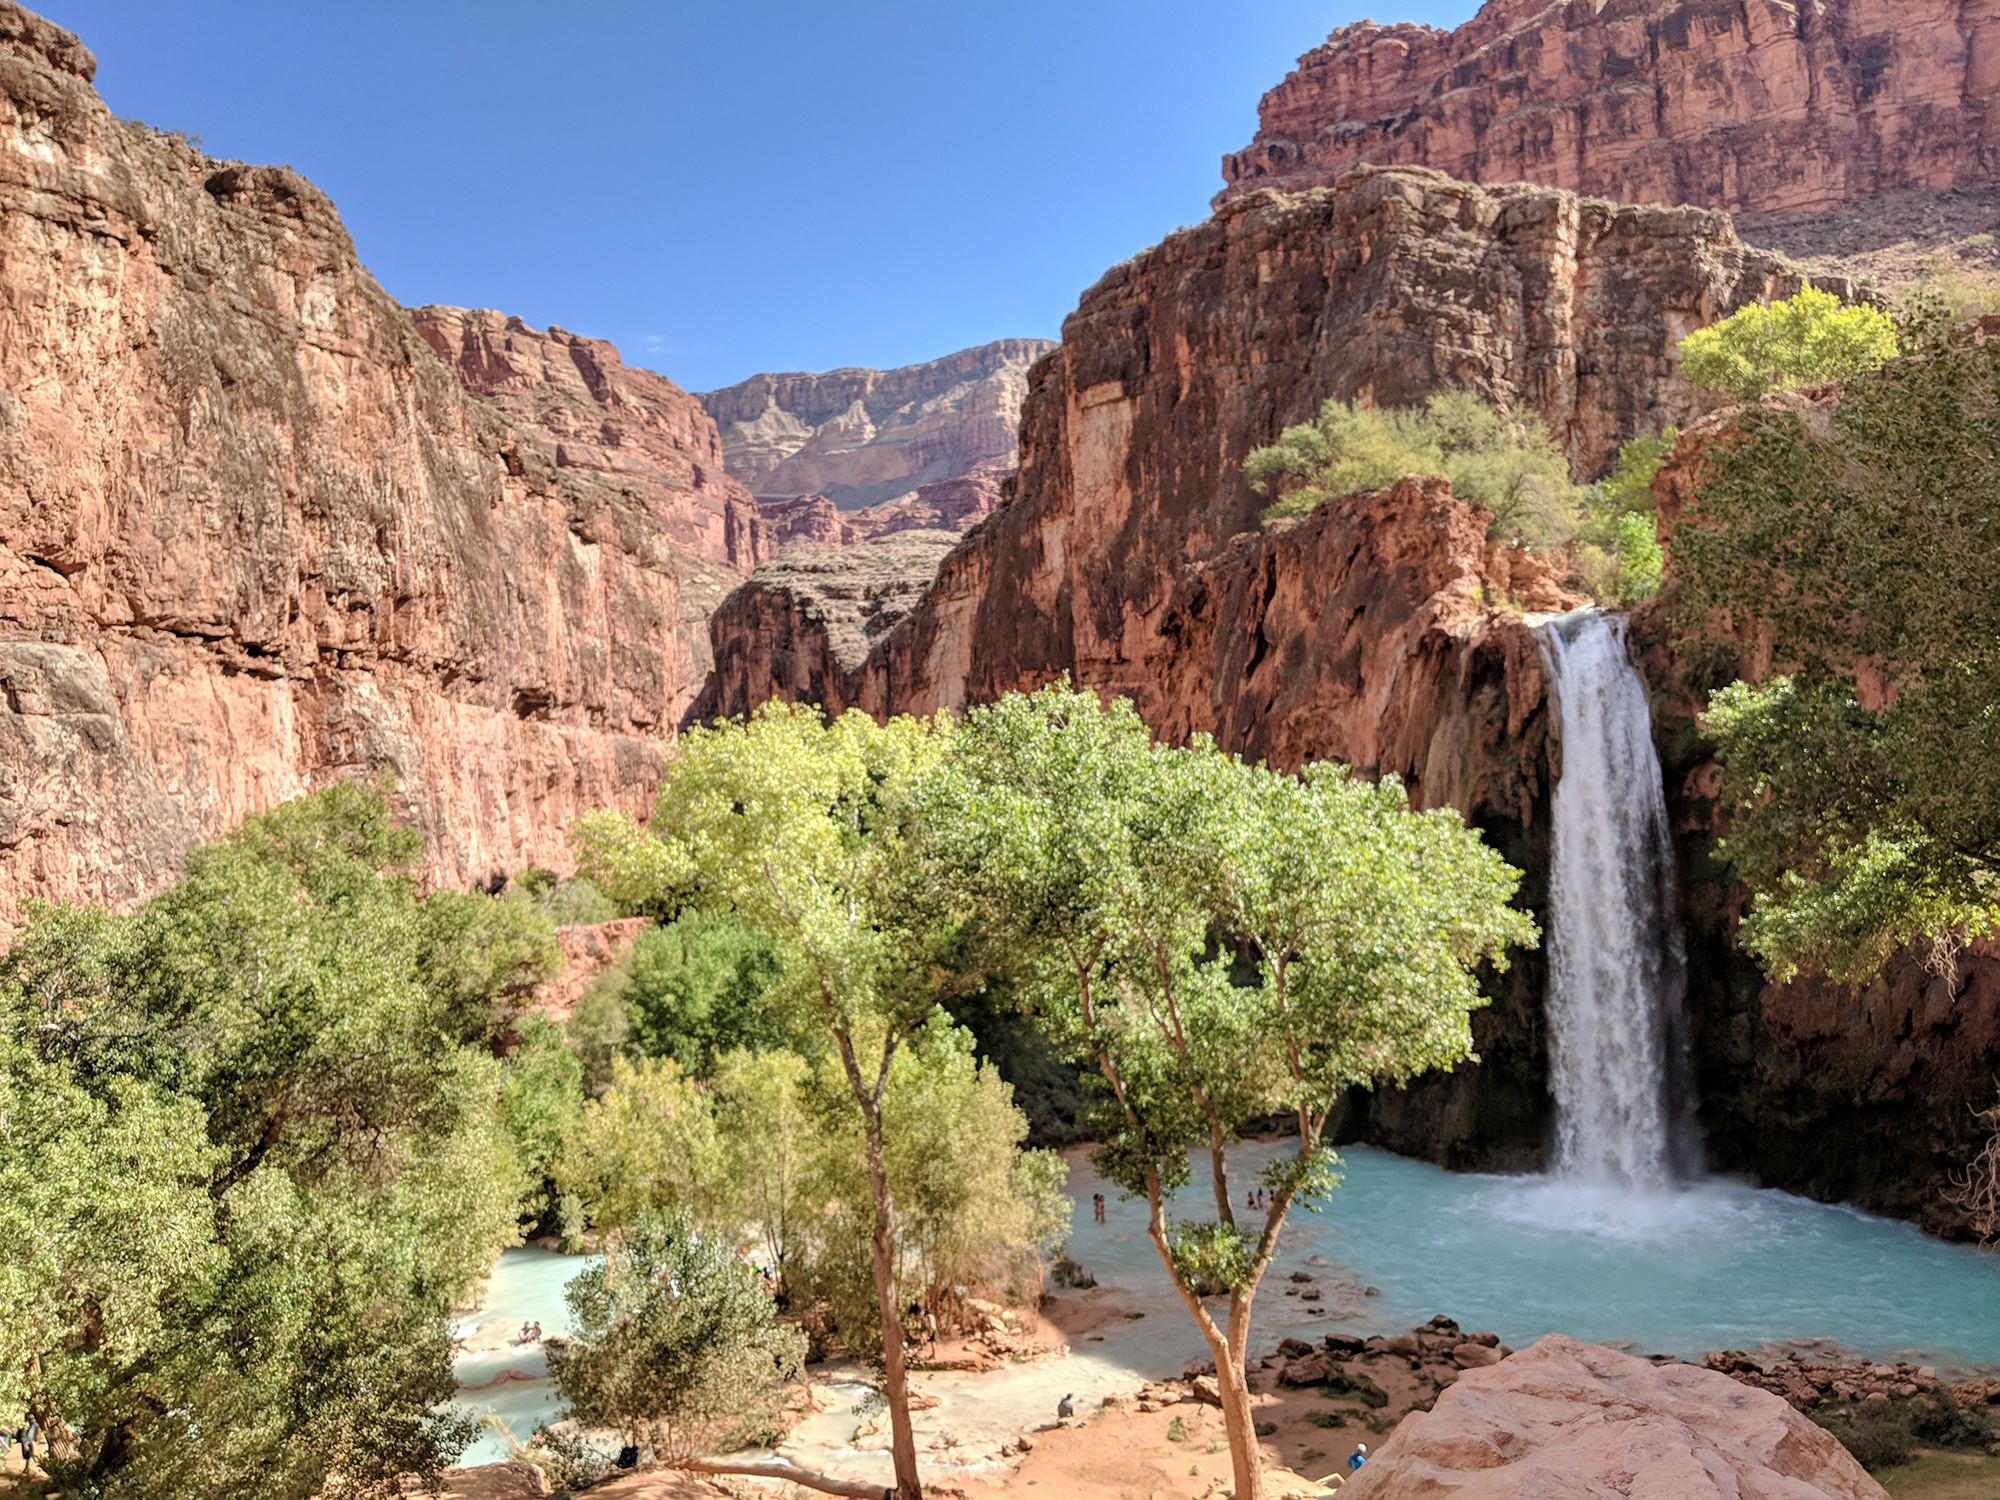 Garden of Eden – Havasupai Falls, Grand Canyon, Arizona